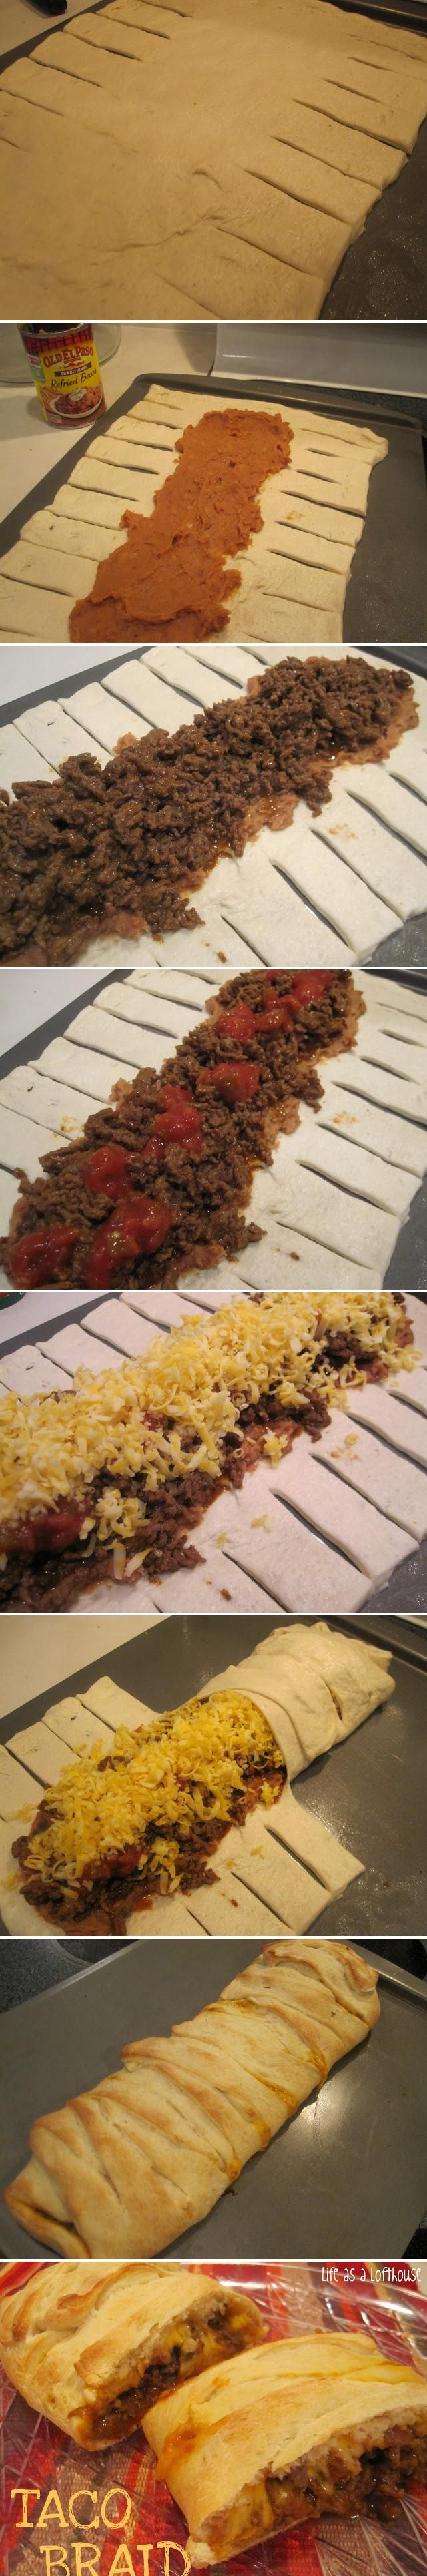 Taco braid, but you can use this process for almost anything. Pizza braid, breakfast braid, etc.